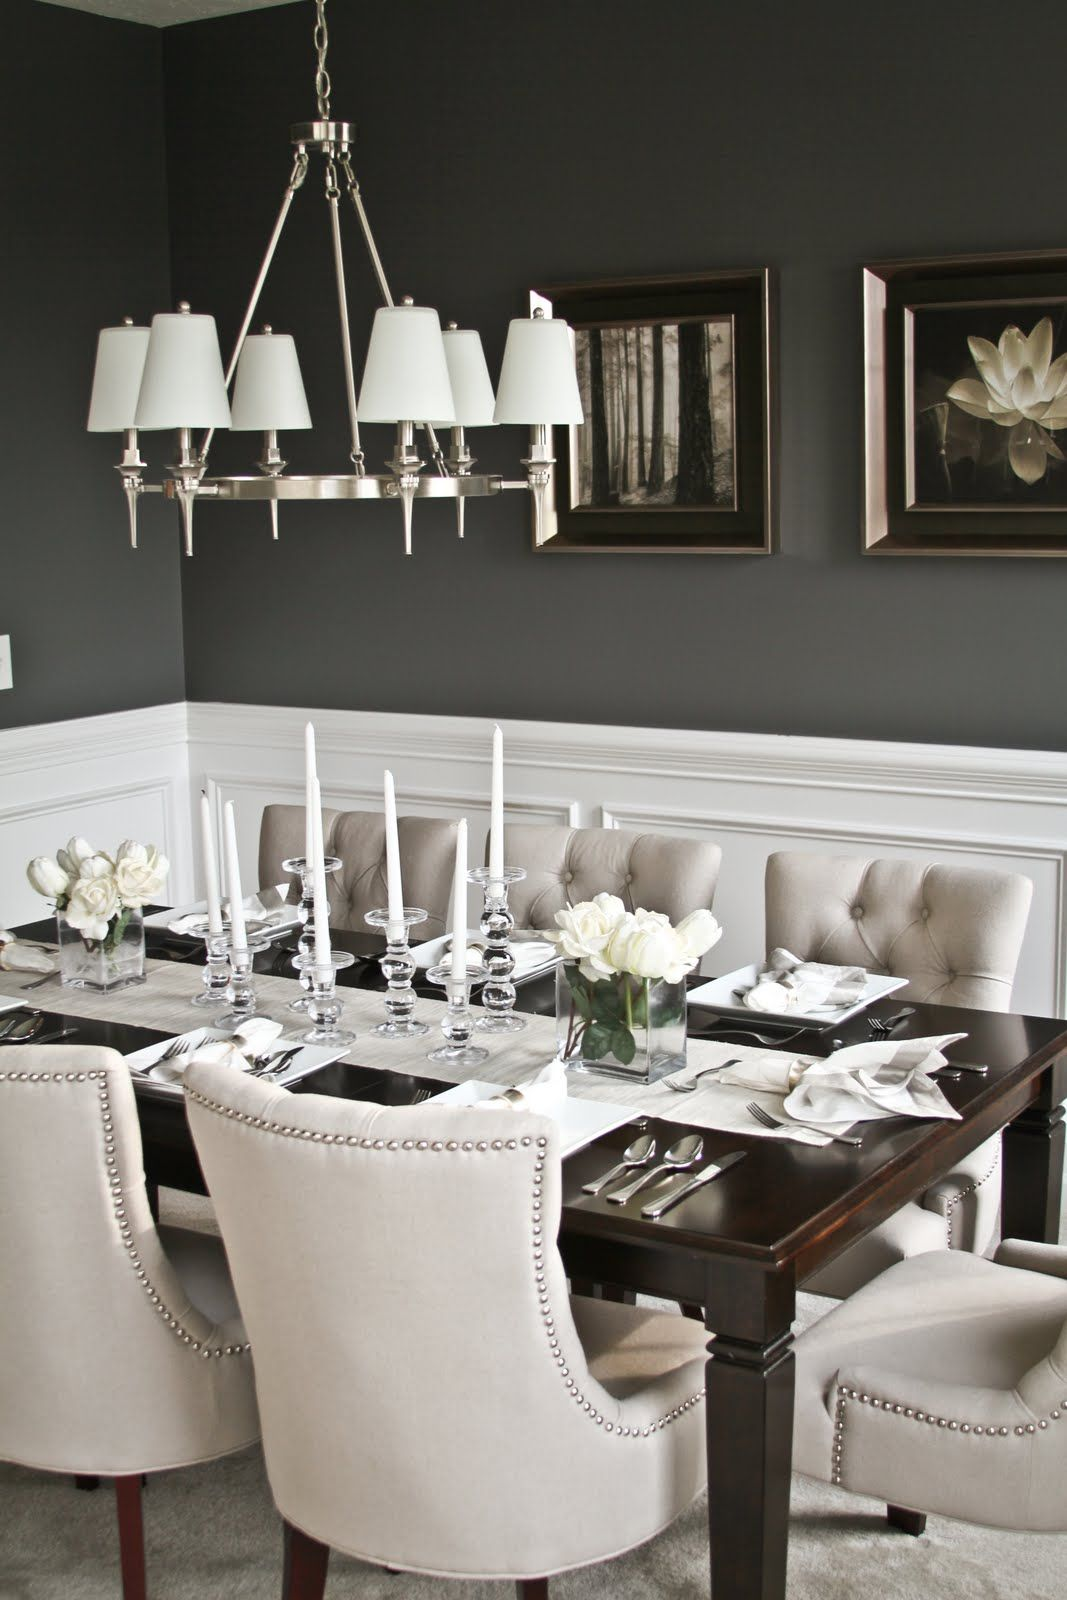 Wainscoting formal dining room - Update On Kitchen Breakfast Nook Dining Room